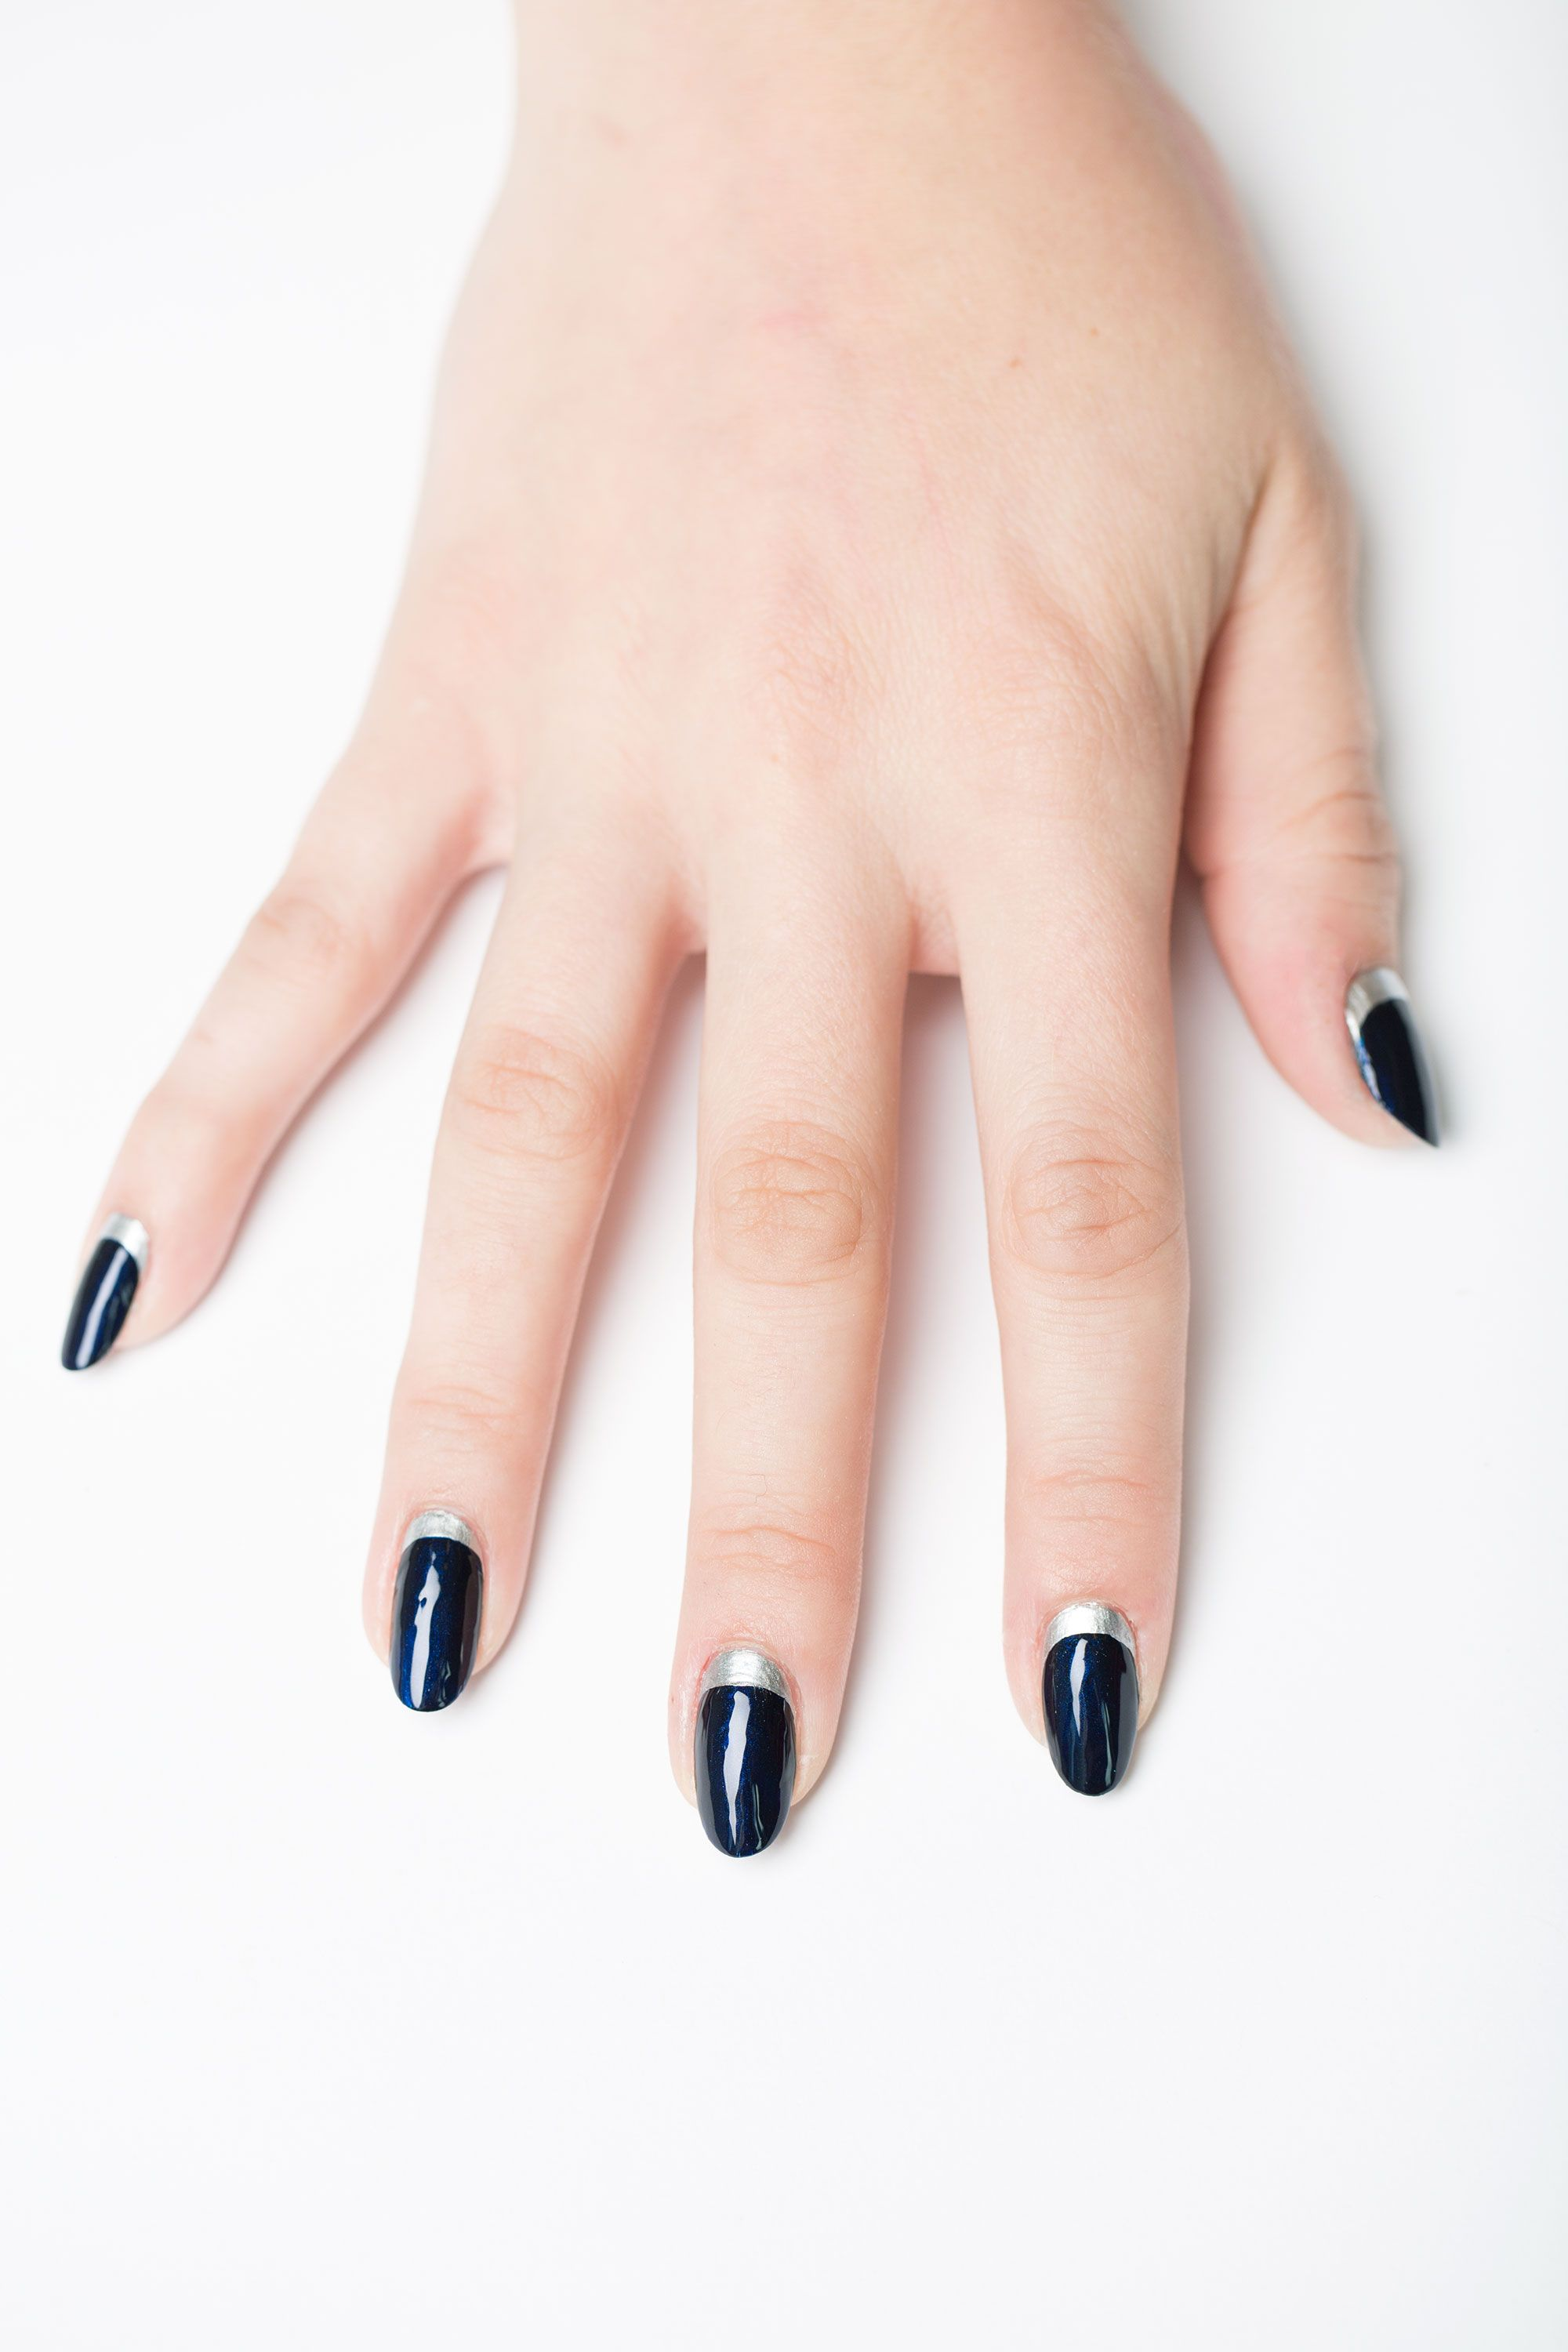 3 step nail art ideas you can totally do yourself nail polish sexy feminine and oh so versatile this design can be created using just about any two shades to fit the season or holiday colors used essie nail polish solutioingenieria Choice Image